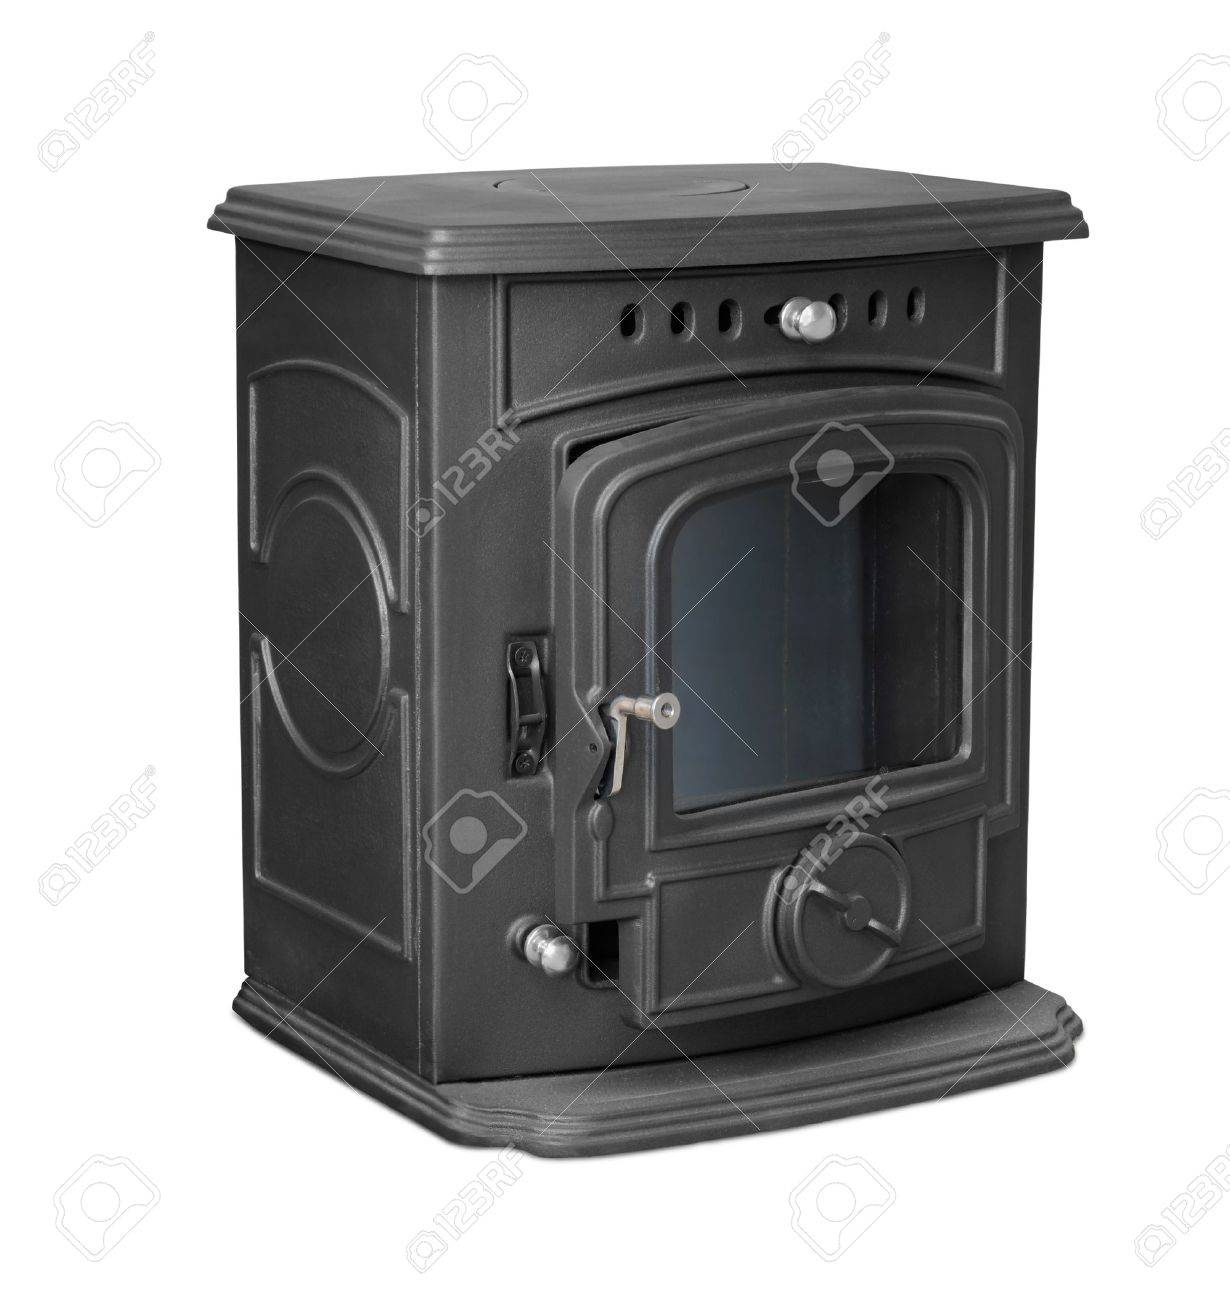 New cast iron wood stove isolated on white Stock Photo - 15437656